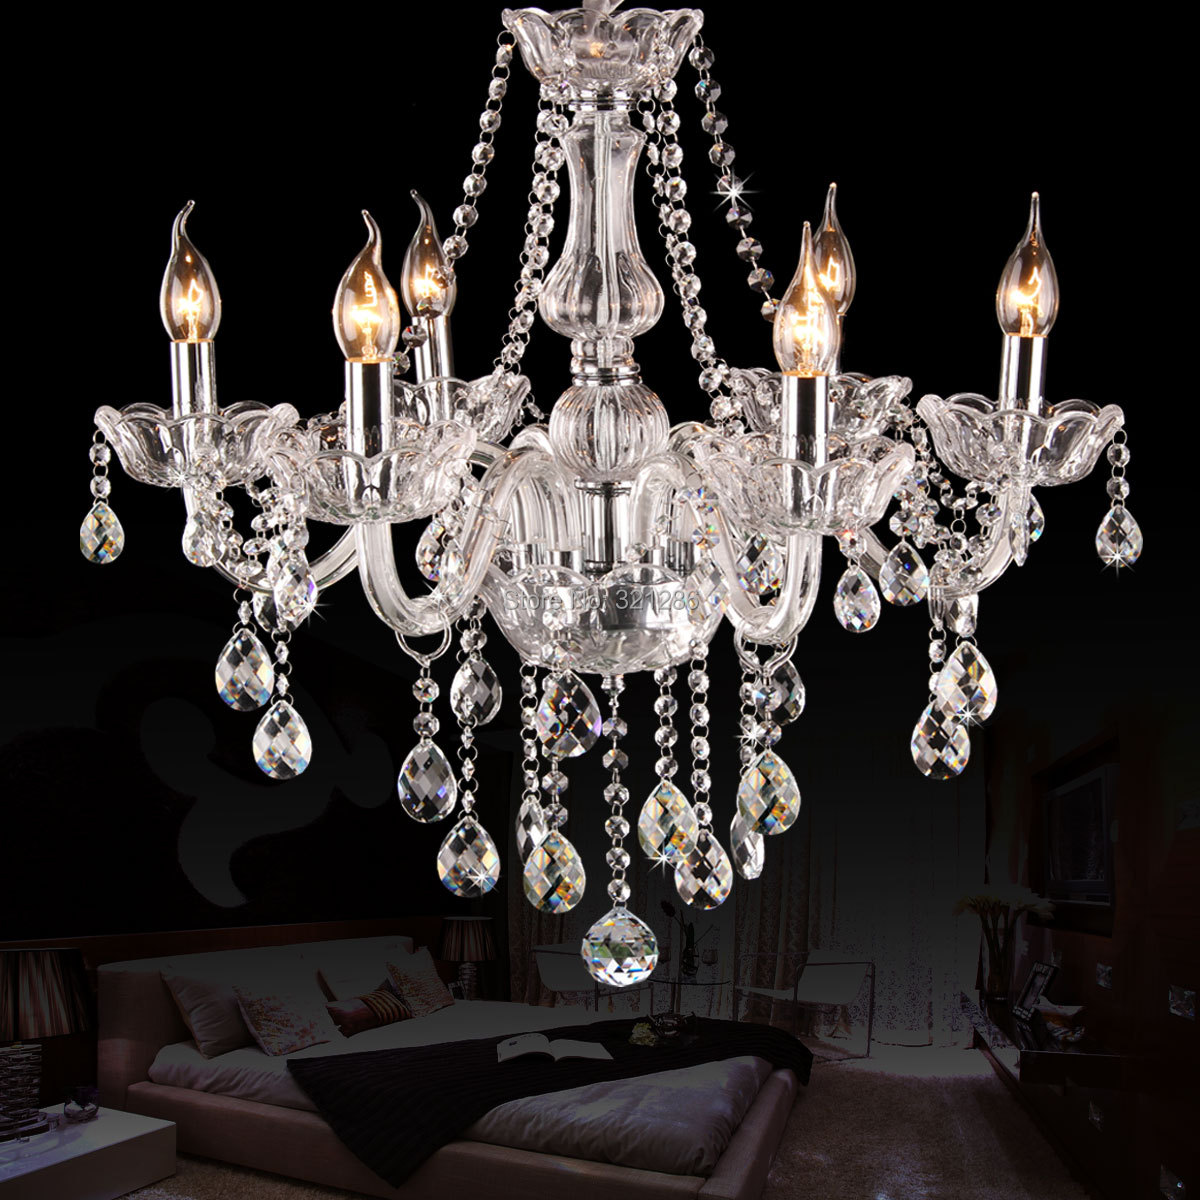 6 arms k9 crystal chandelier european candle crystal for Living room chandelier